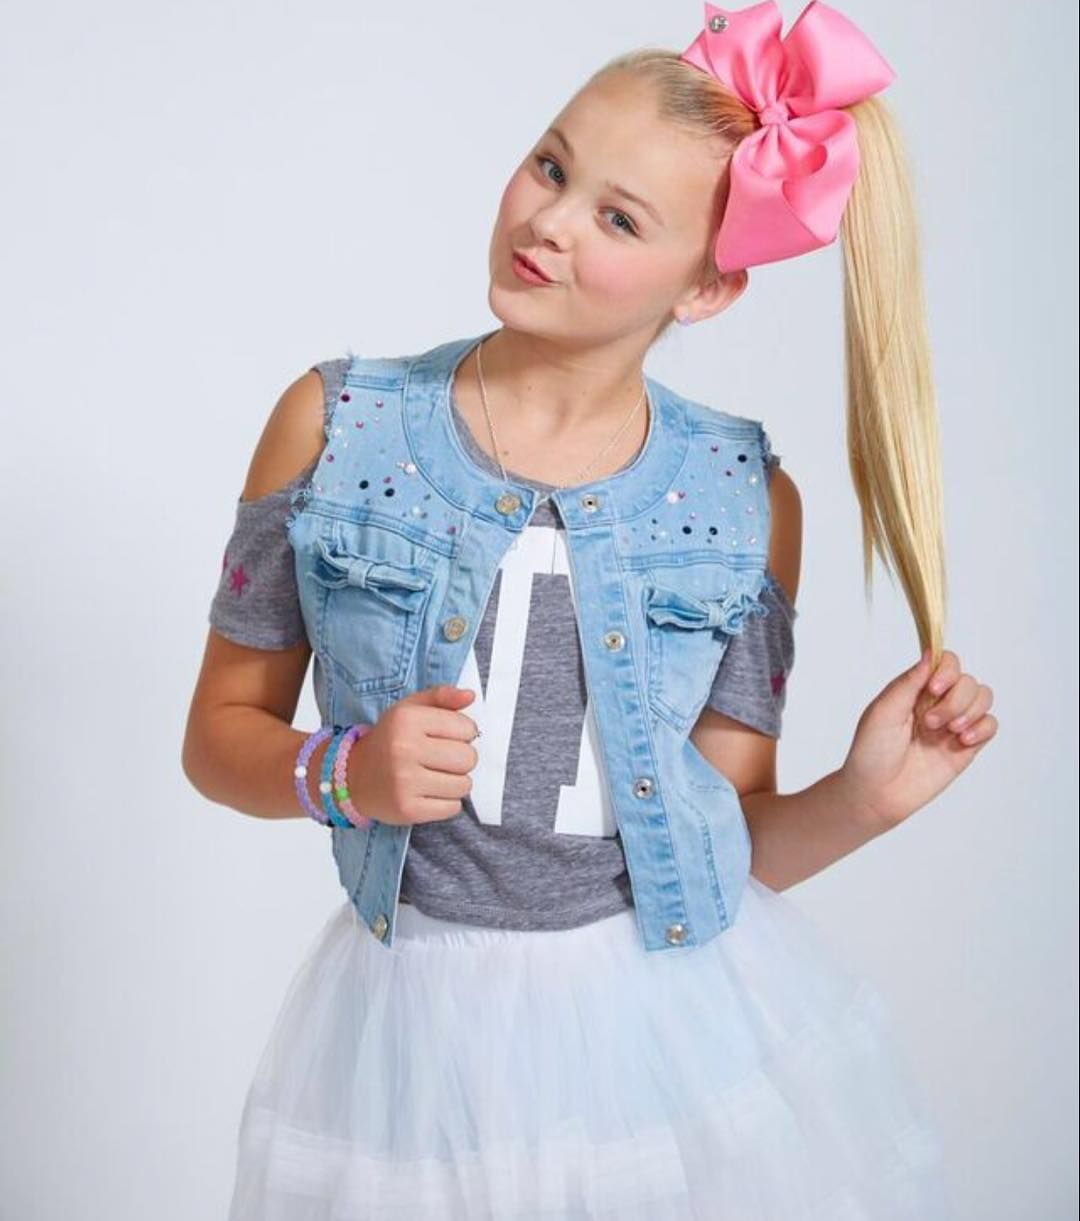 Pin On Jojo Siwa